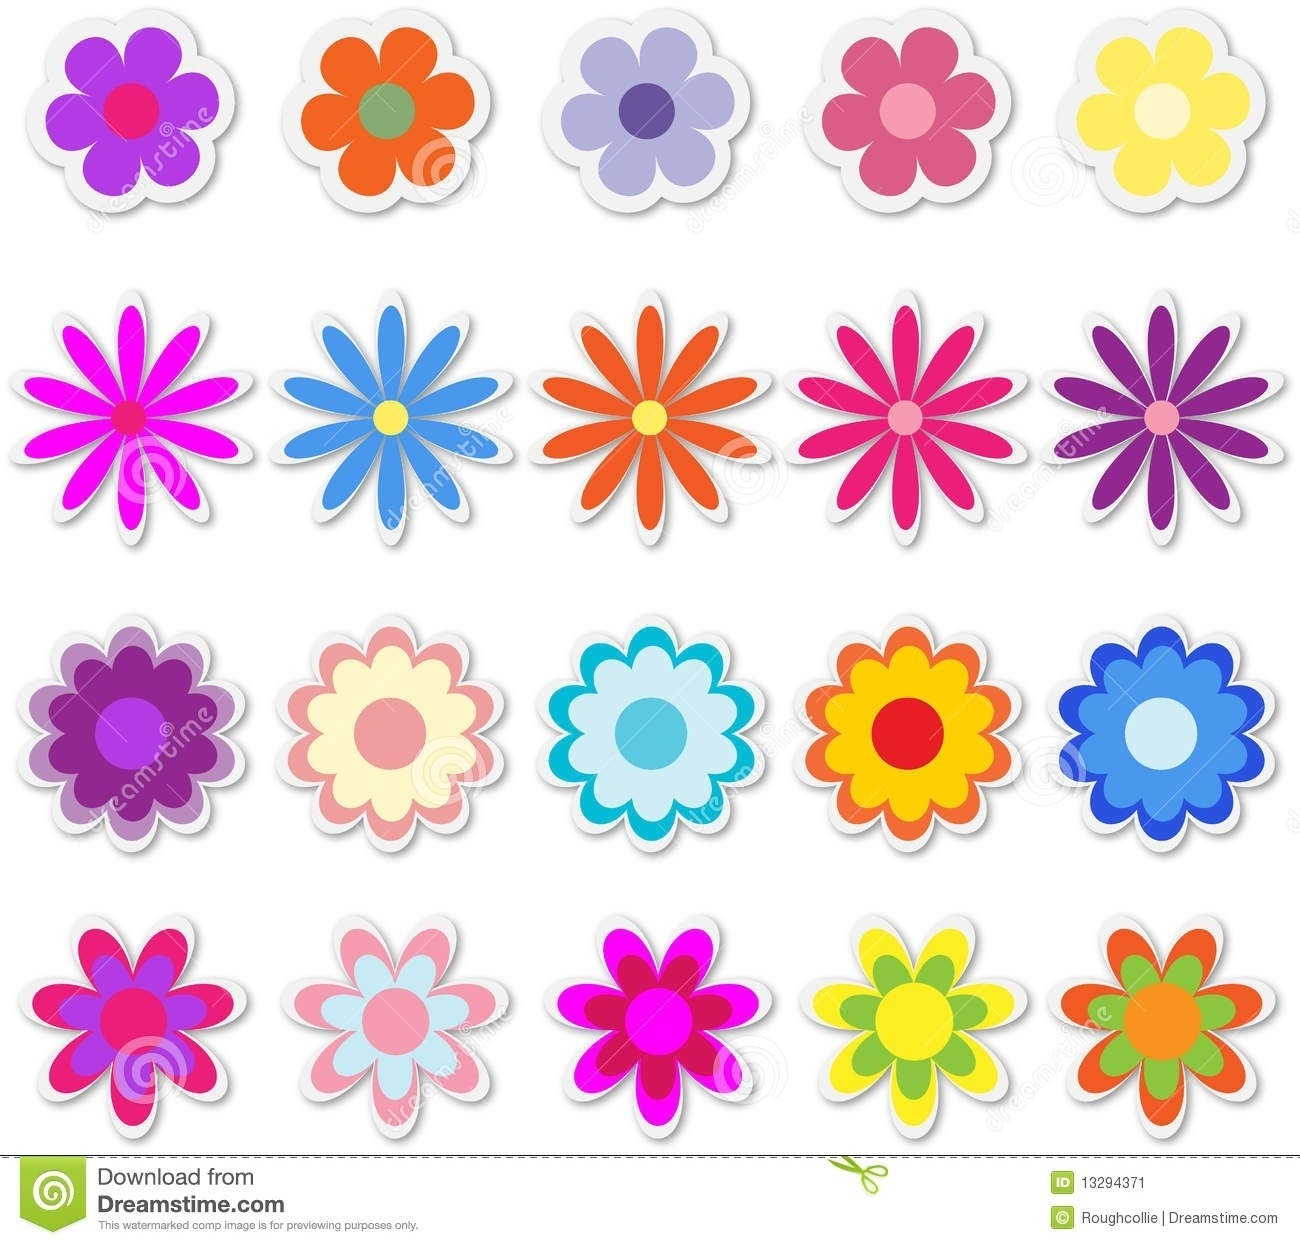 Flower Stickers For Cards | World Of Example inside Flower Stickers For Cards 26725